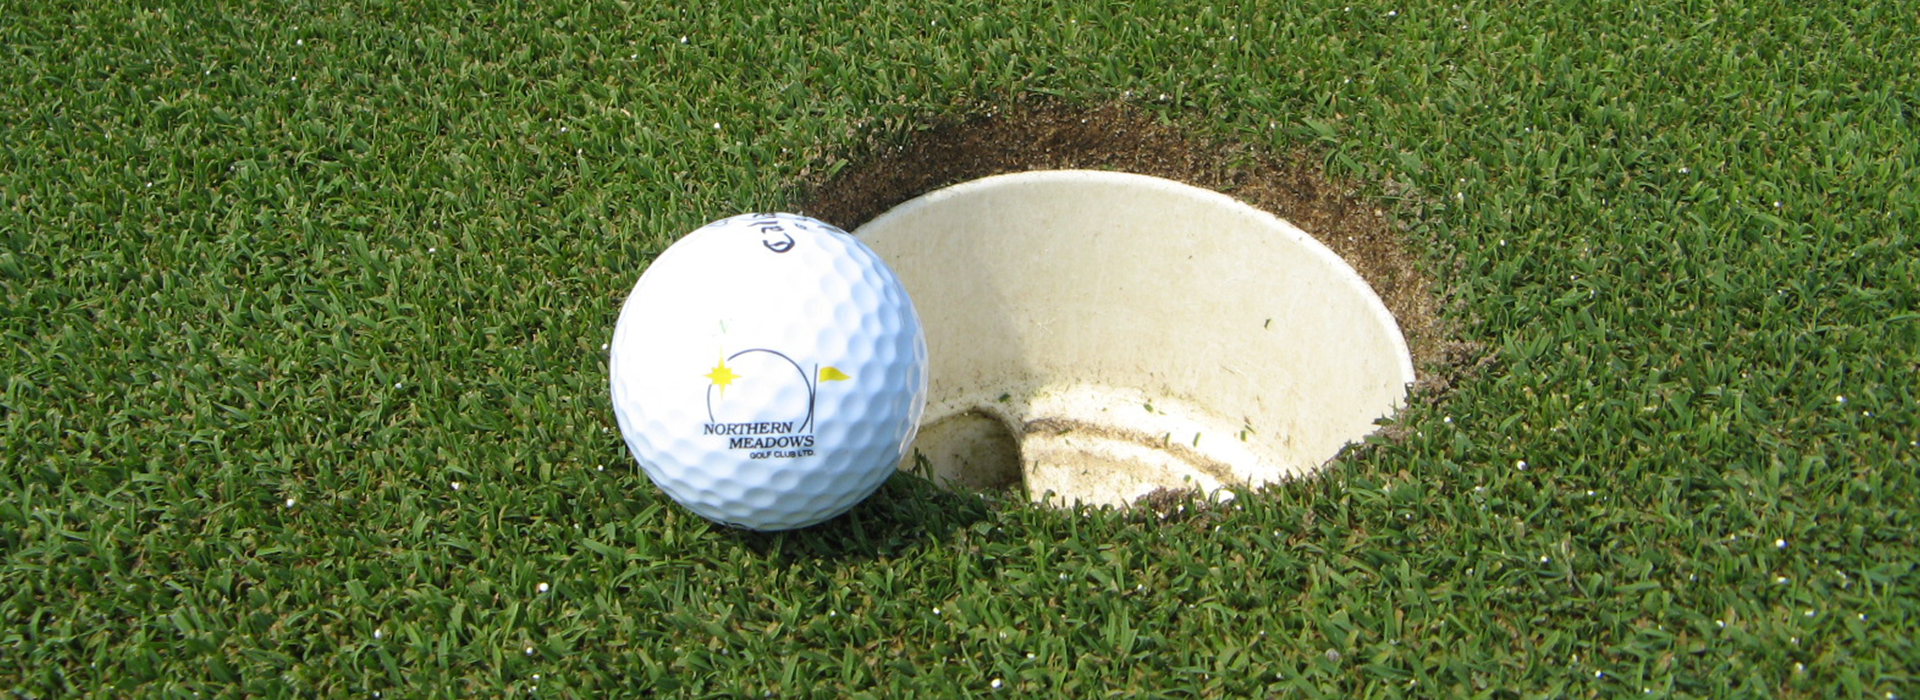 Northern Meadows Golf Ball